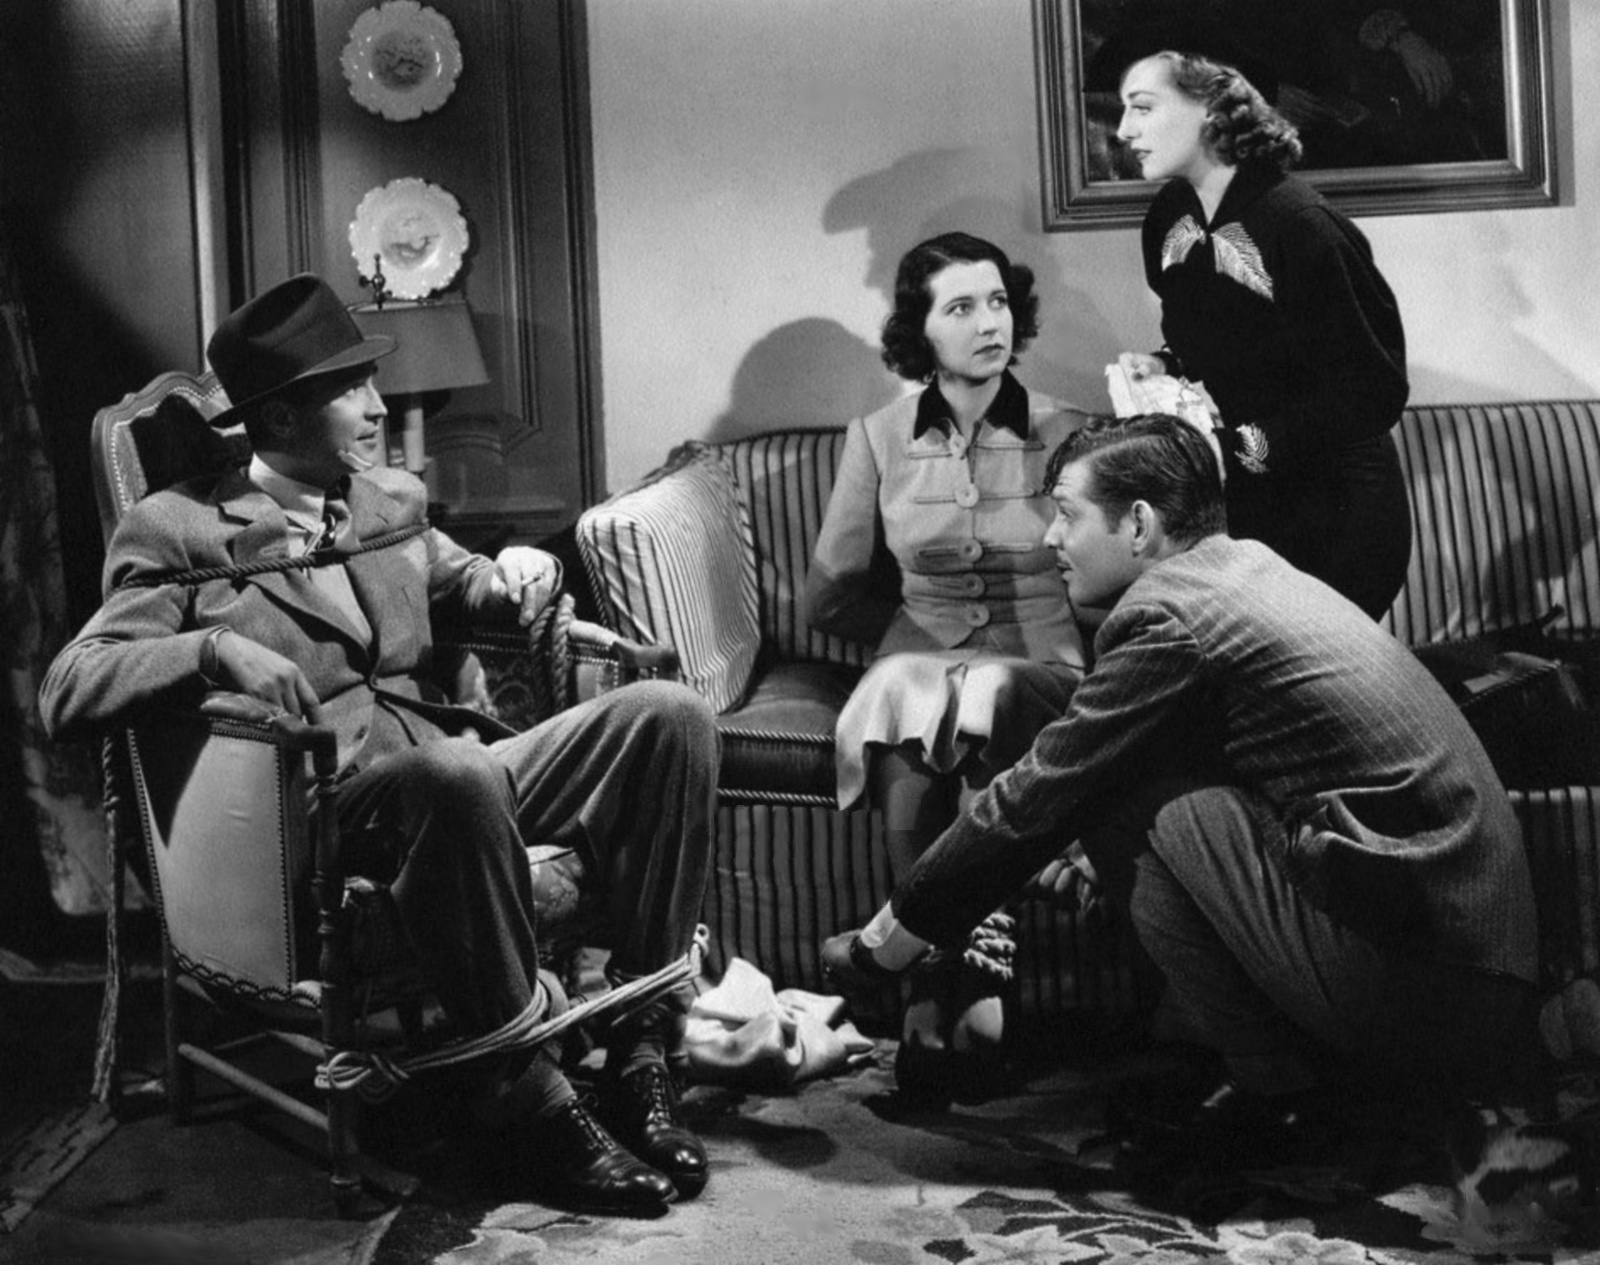 (L to R)  Franchot Tone,Mona Barrie,Clark Gable,Joan Crawford